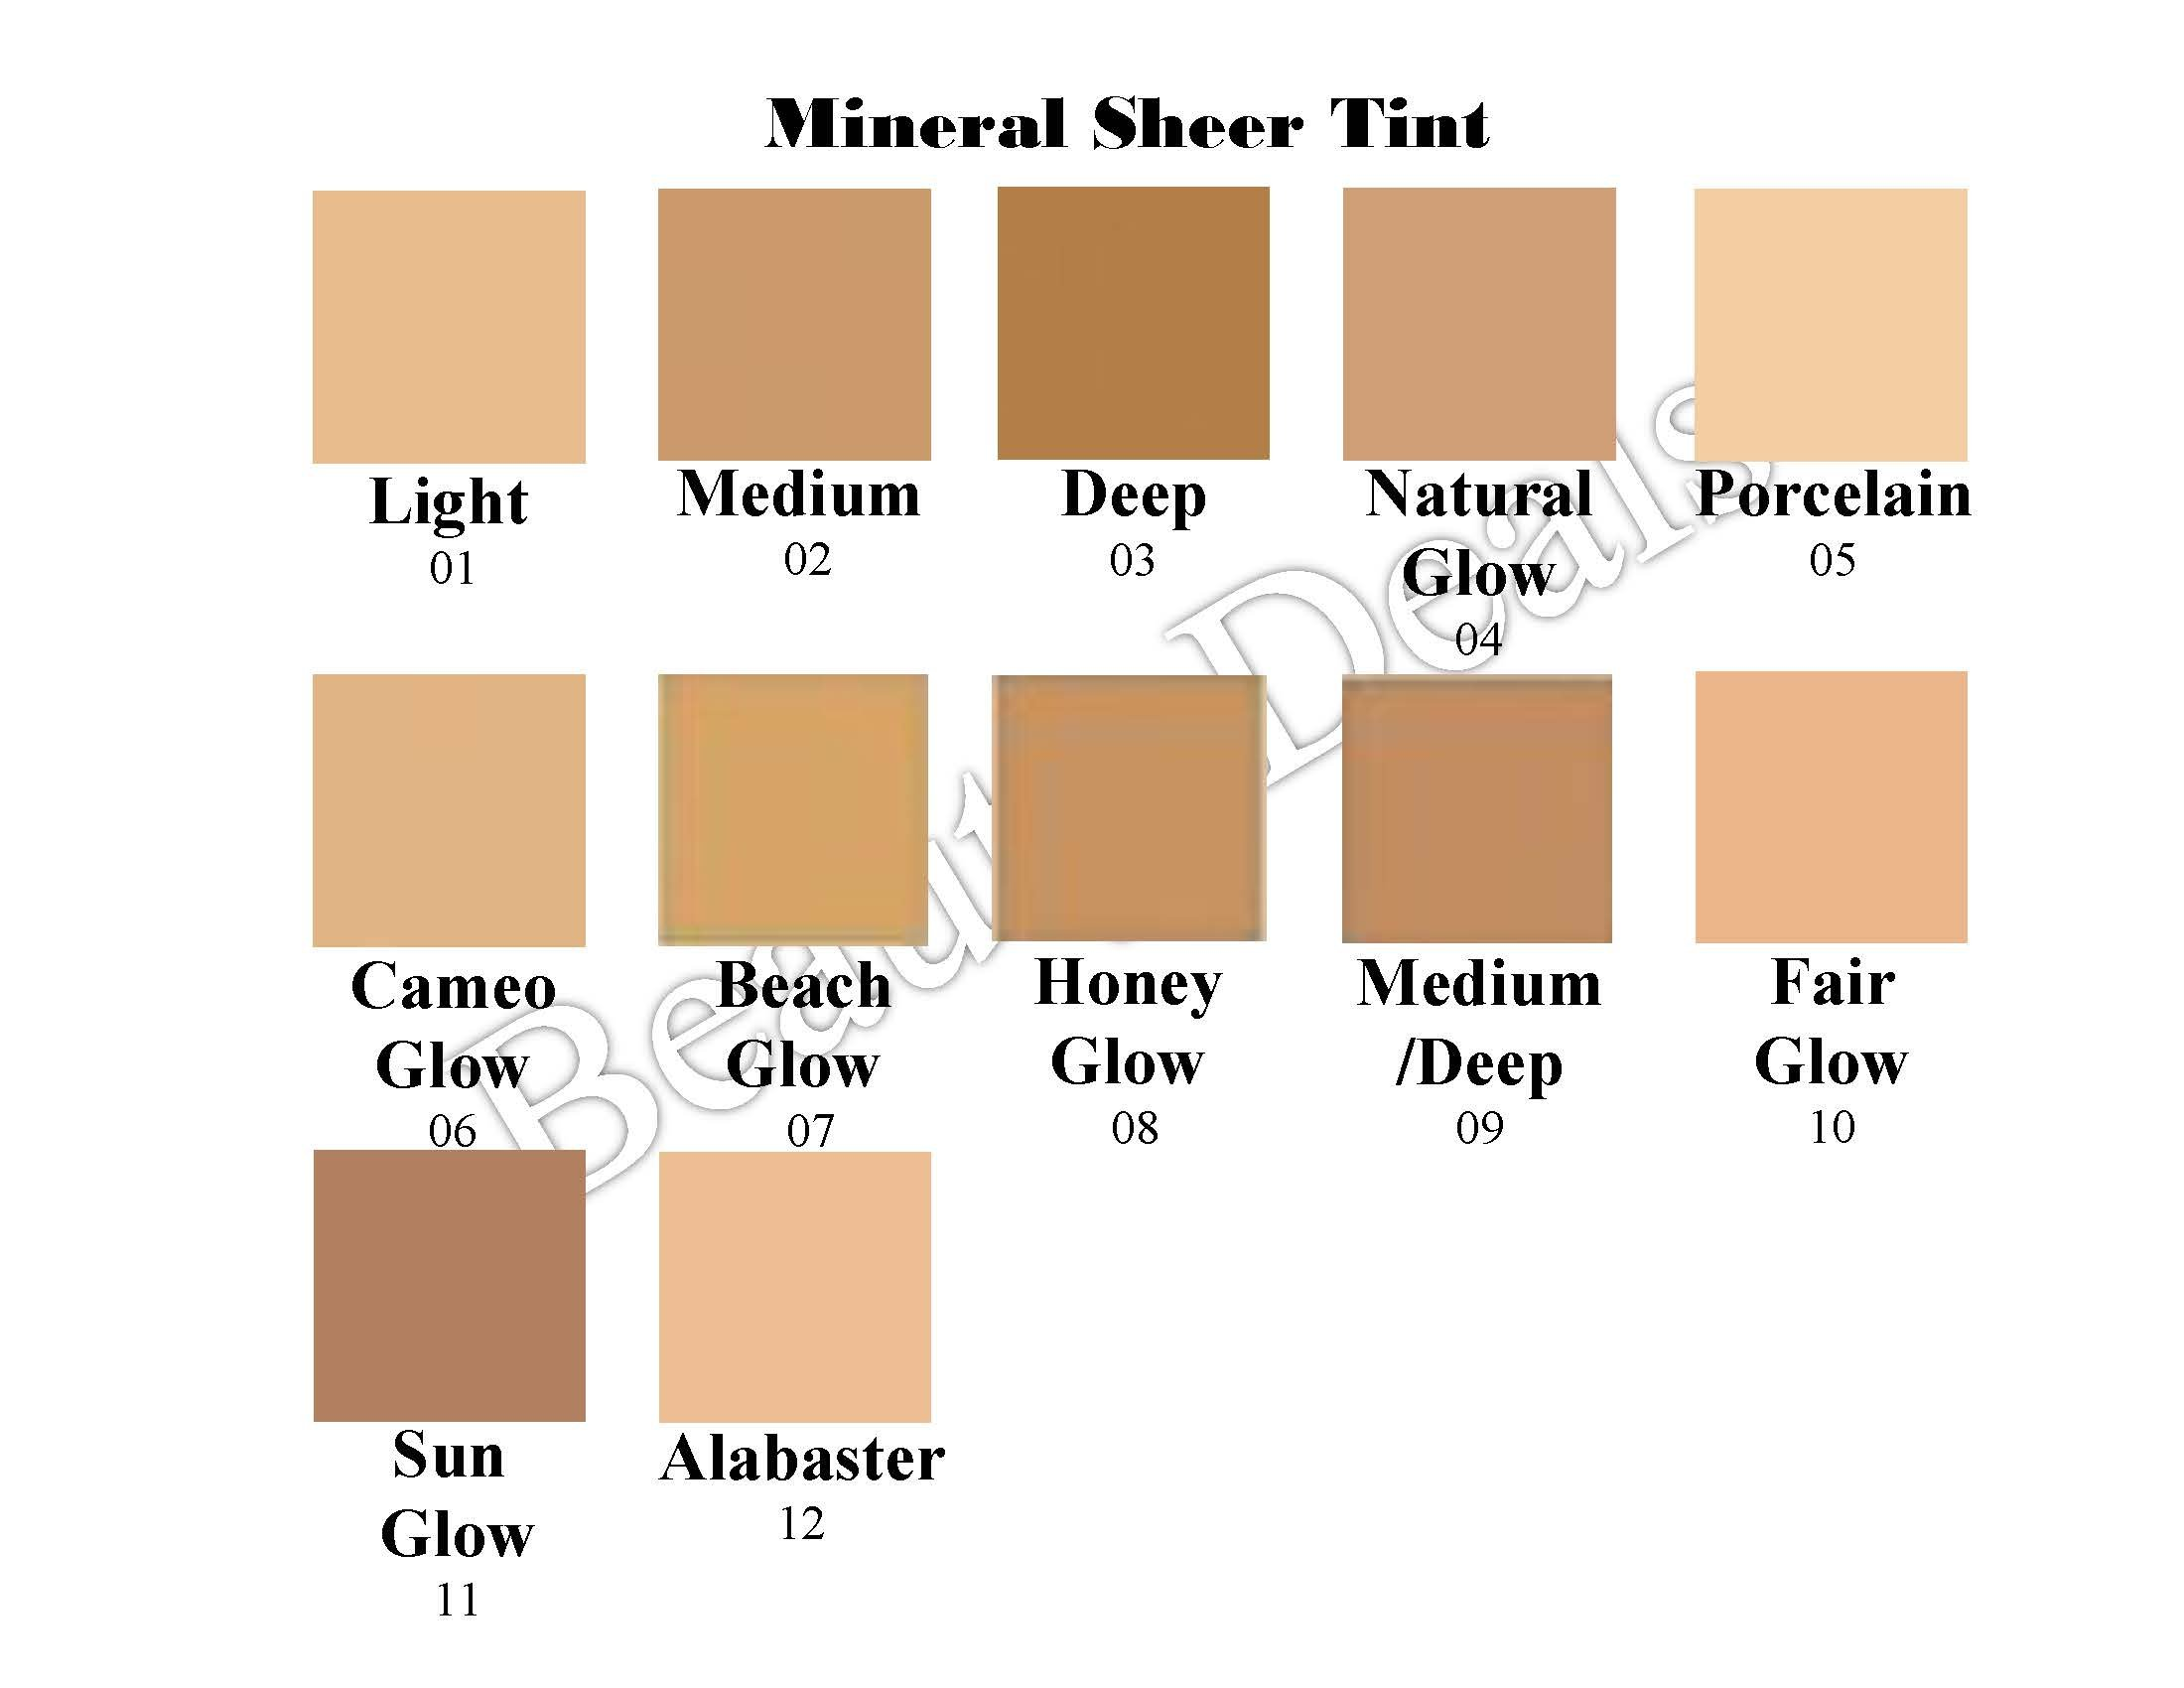 Beauty Deals Mineral Sheer Tint SPF 20 Tinted Moisturizer (Cameo Glow)